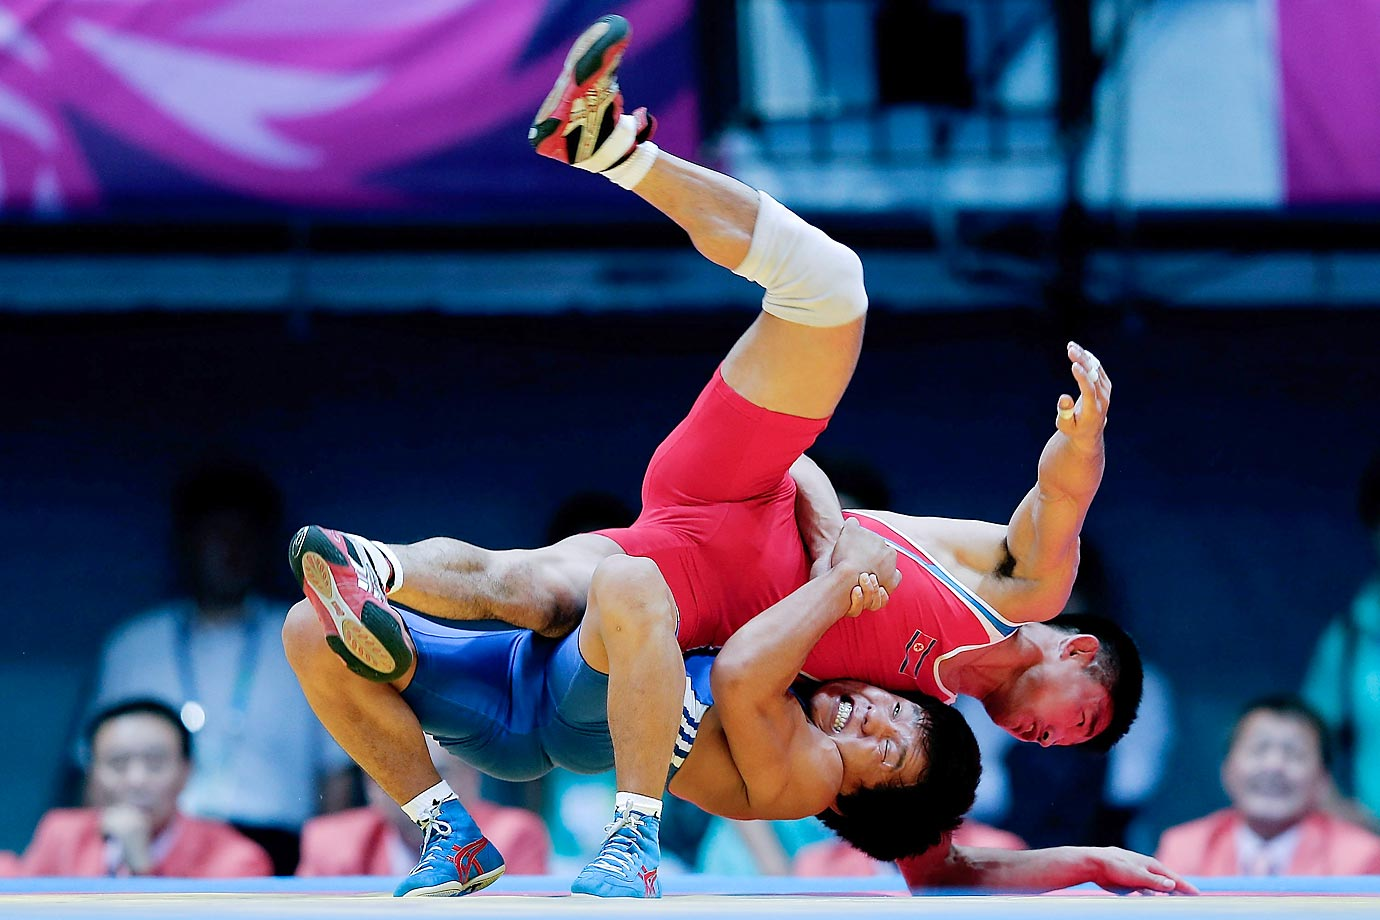 Jong Hakjin (red) of North Korea competes with Kaliyev Rassul of Kazakhstan in the wrestling men's freestyle 57 kg final of the Asian Games.